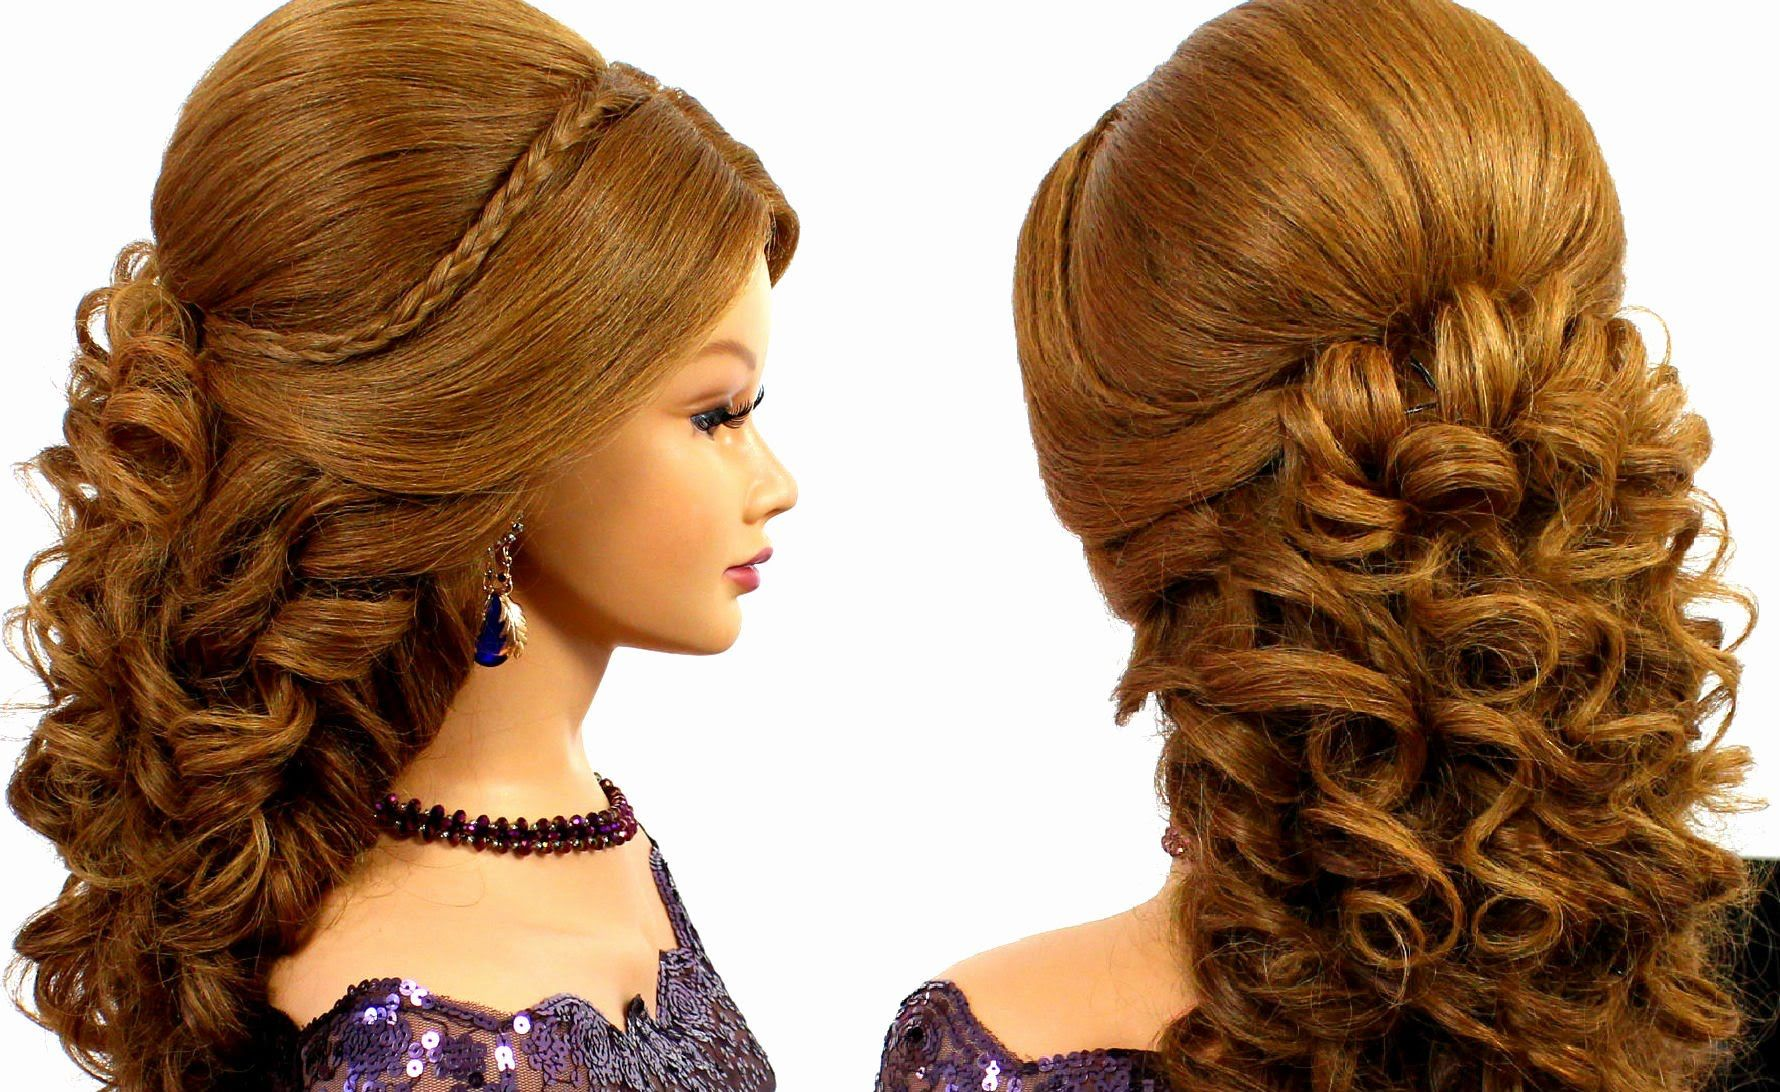 Hairstyles For Weddings 2015 Romantic Wedding Prom Hairstyle For Long Hair Frisuren